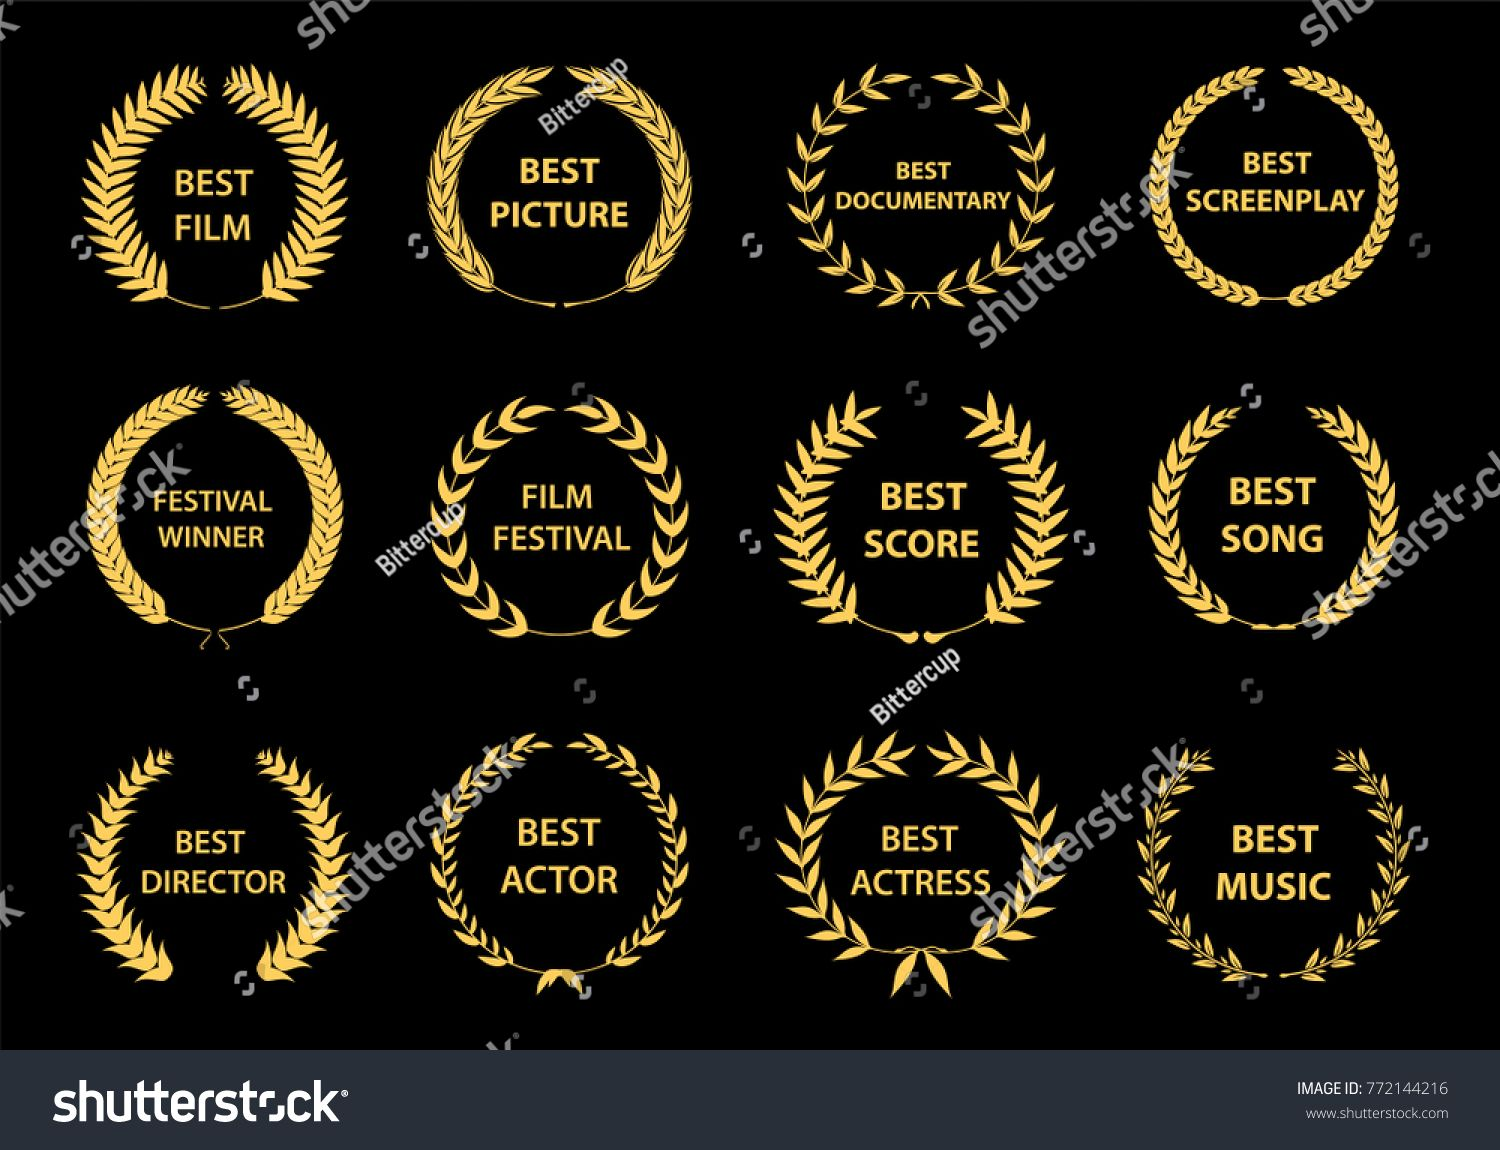 Set Of Gold Silhouette Film Award Wreaths On Black Background Vector Illustration Film Award Silhouette Set Film Awards Film Pictures Film